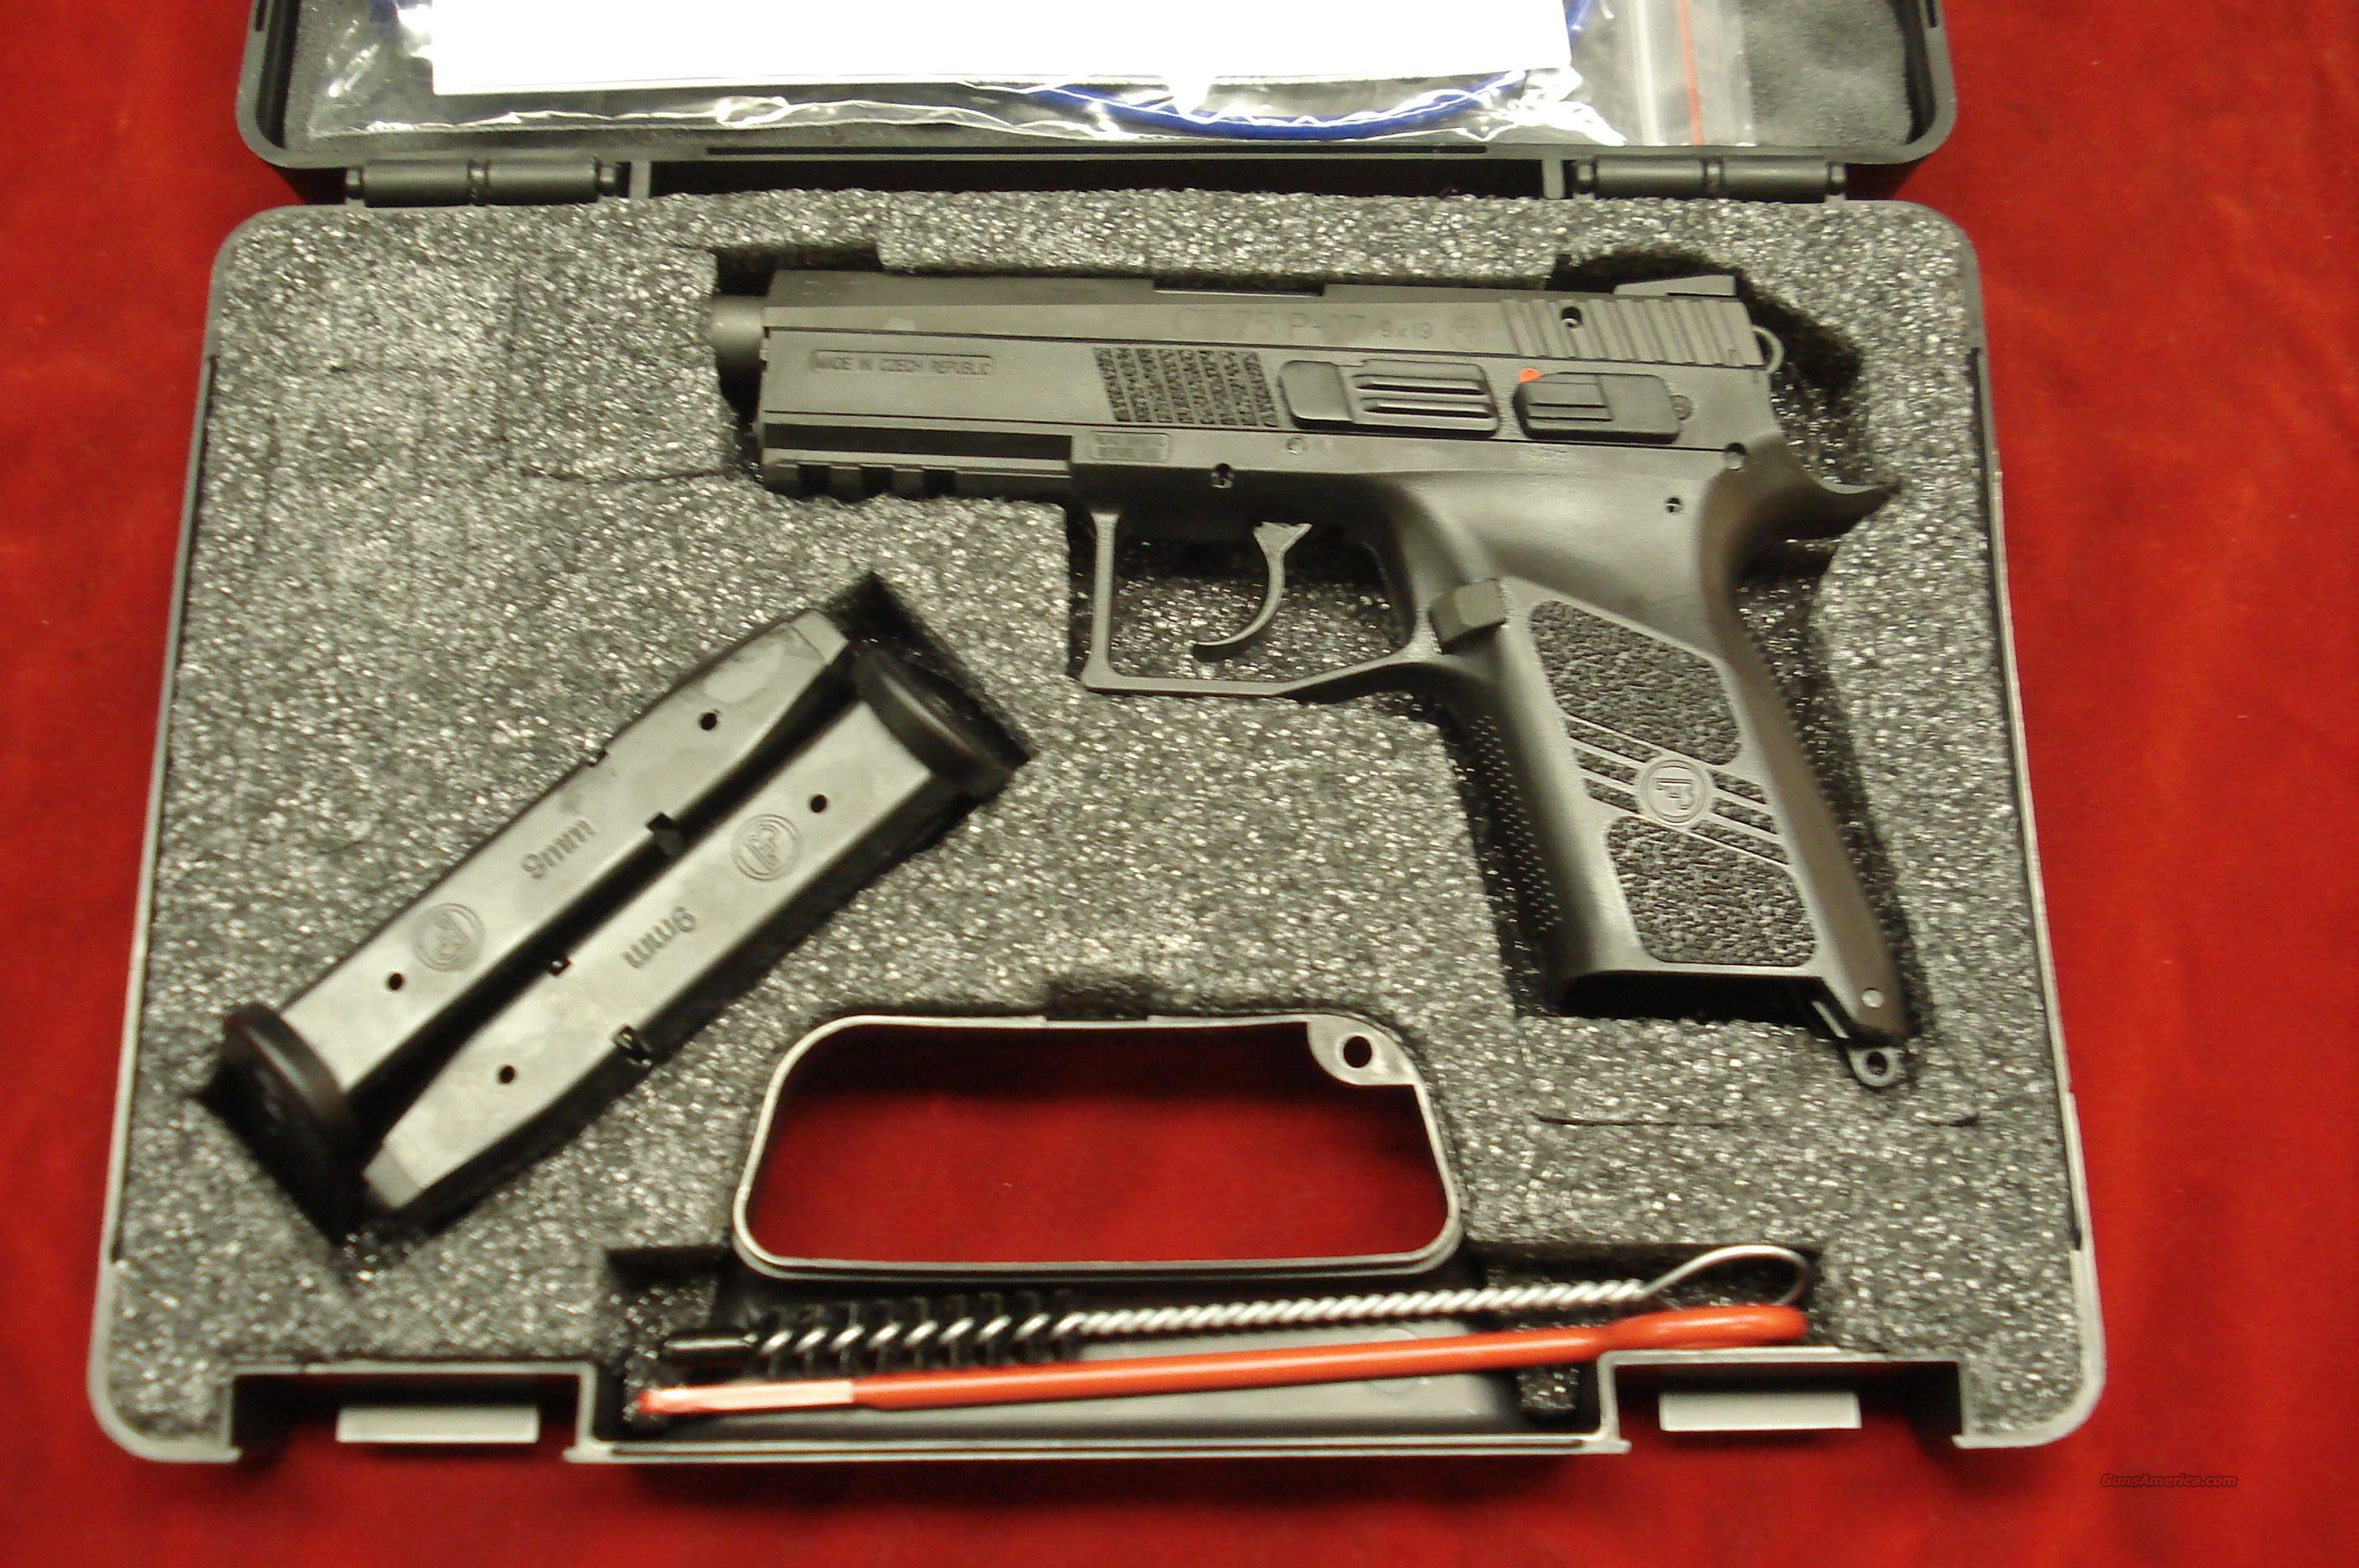 CZ 75 P-07 DUTY 9MM CAL. WITH TRIJICON HIGHT SIGHTS NEW  Guns > Pistols > CZ Pistols